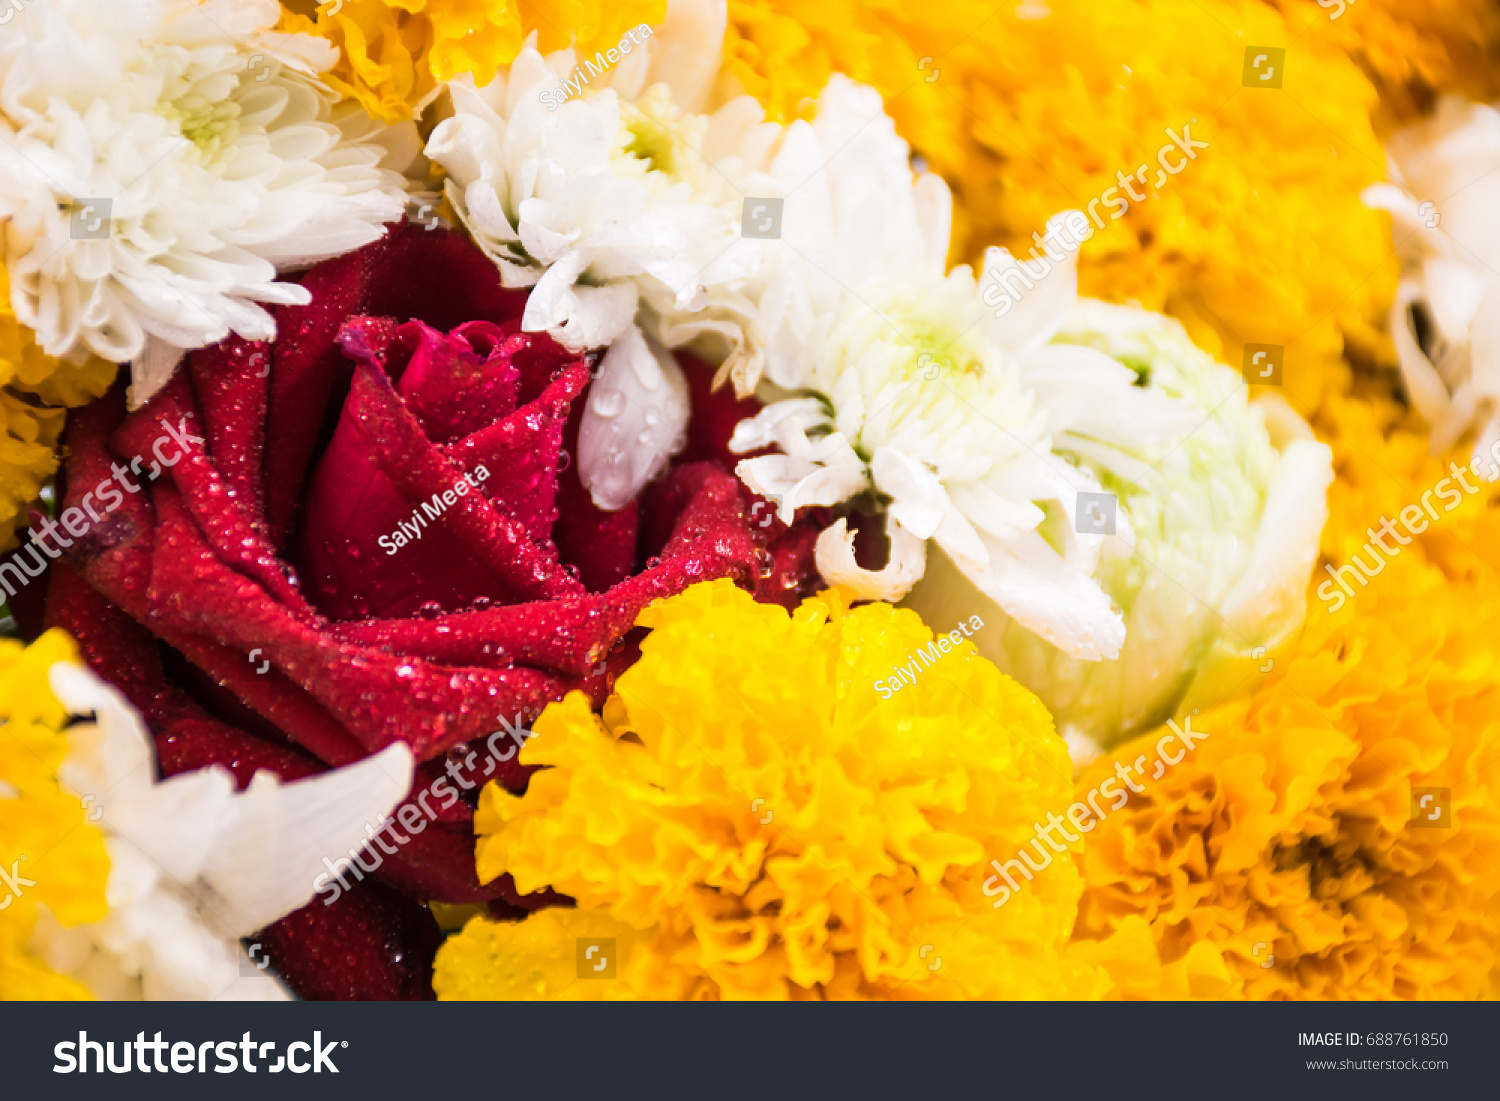 Asia Flowers Around Red Rose Mean Stock Photo Edit Now 688761850